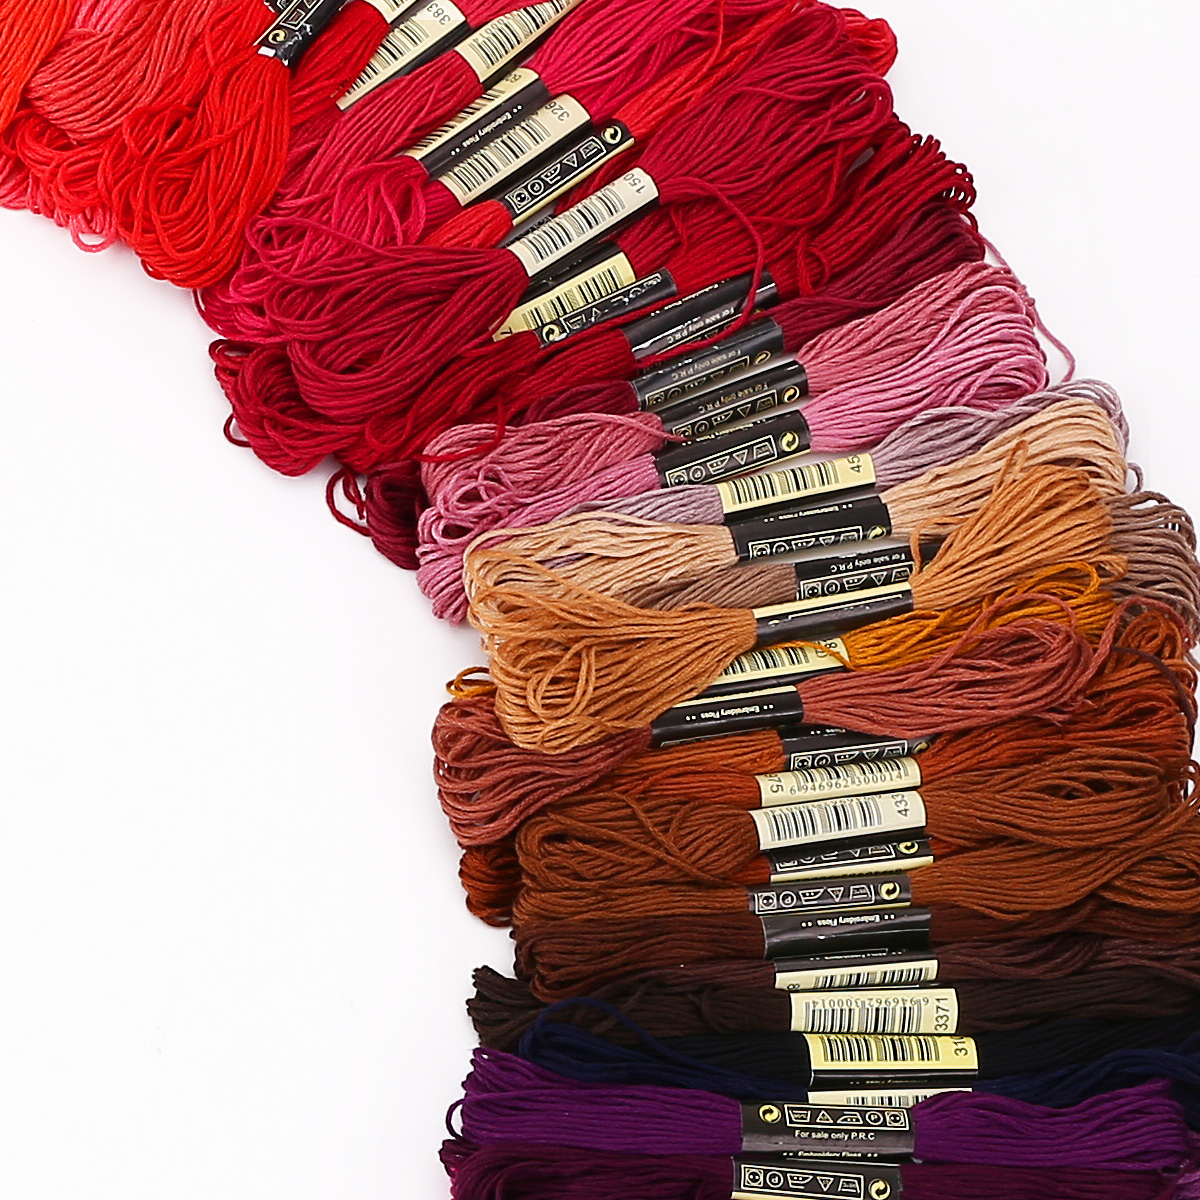 50-300-Color-Cross-Stitch-Thread-Embroidery-Floss-Sewing-Skeins-100-Cotton-Line thumbnail 8